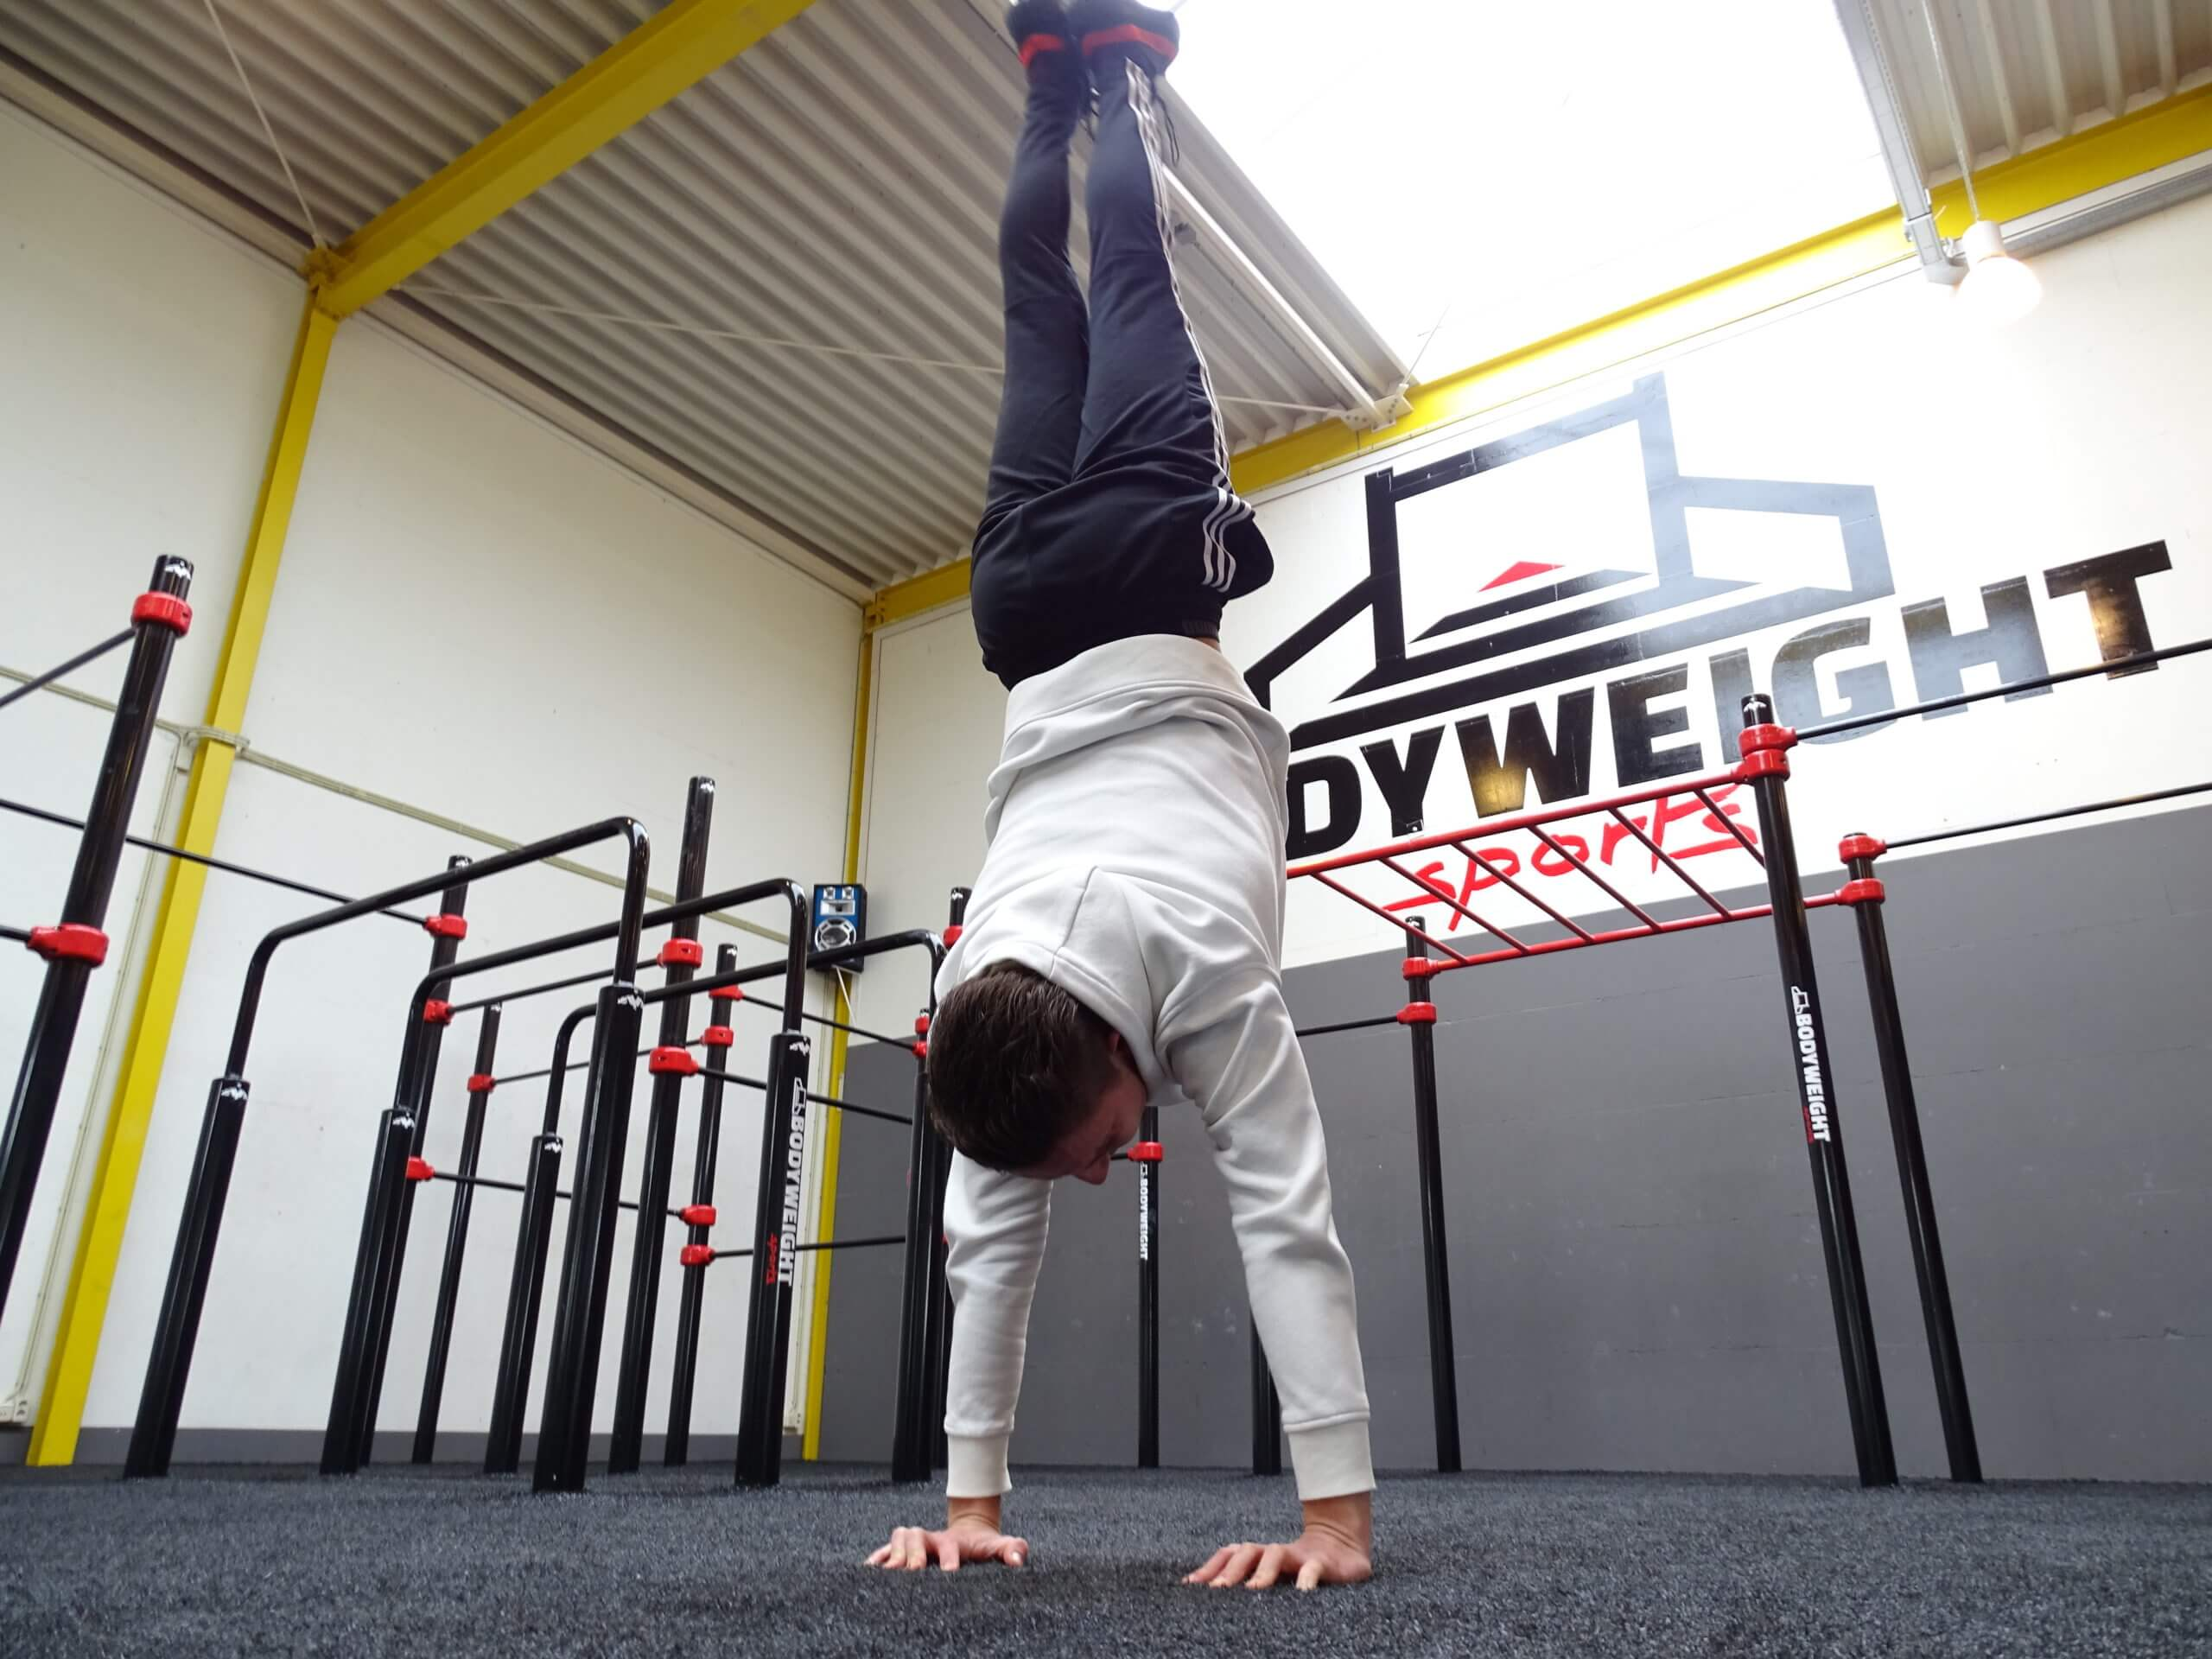 Gratis bodyweight e-books